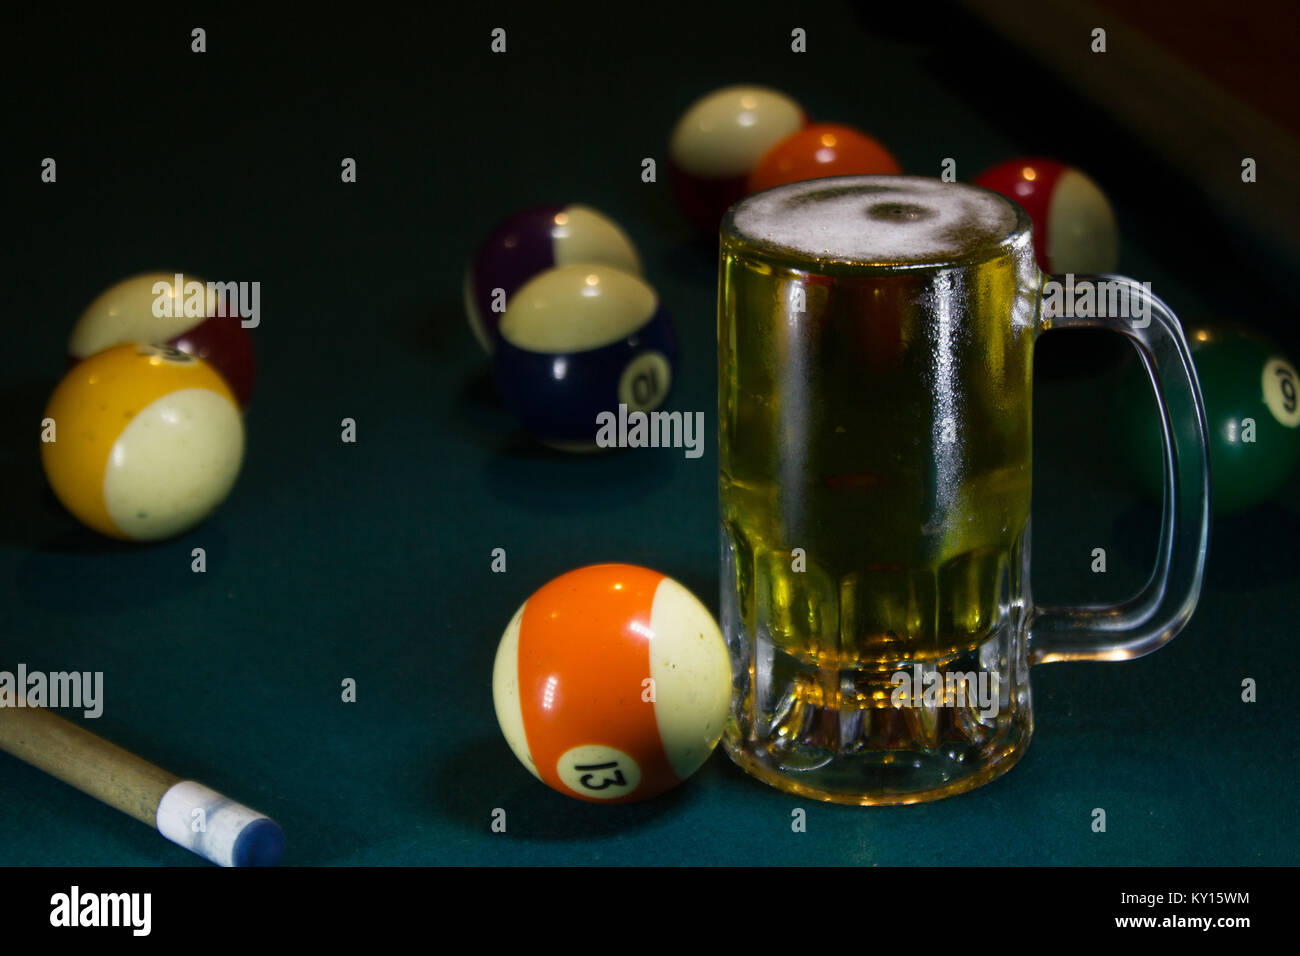 cold beer mug on a green billiard table with several colorful billiard balls and cue stick - Stock Image